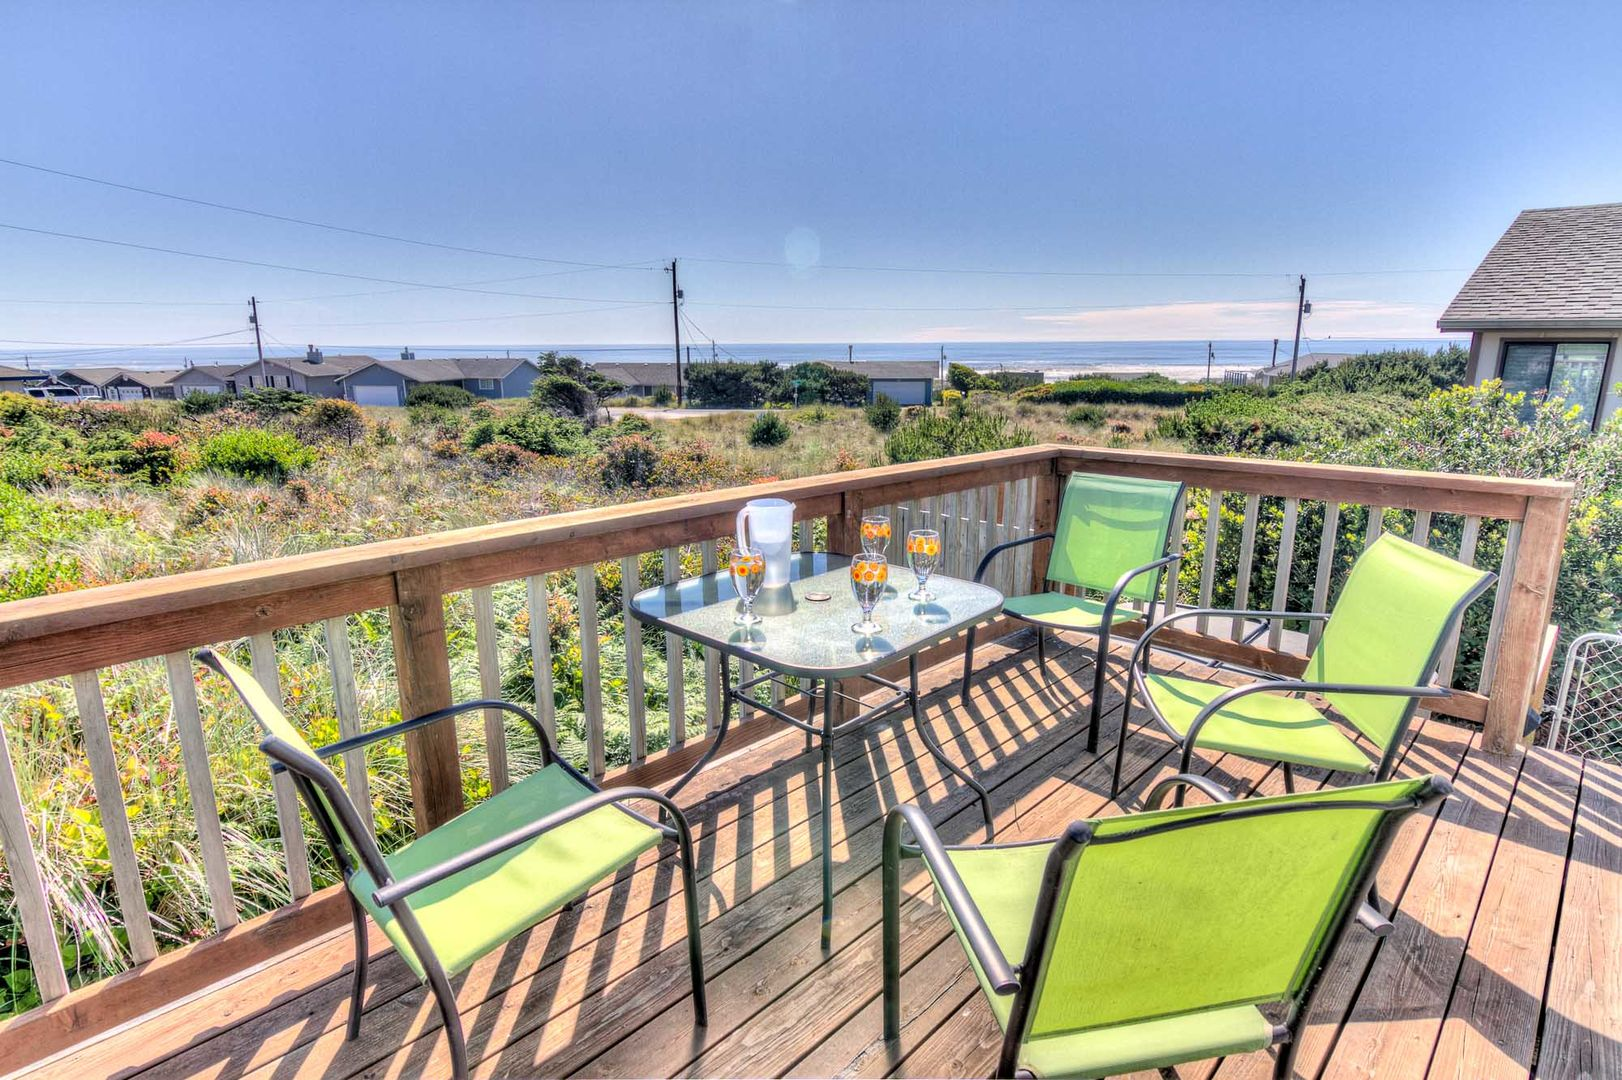 Enjoy the sunny deck and ocean views!